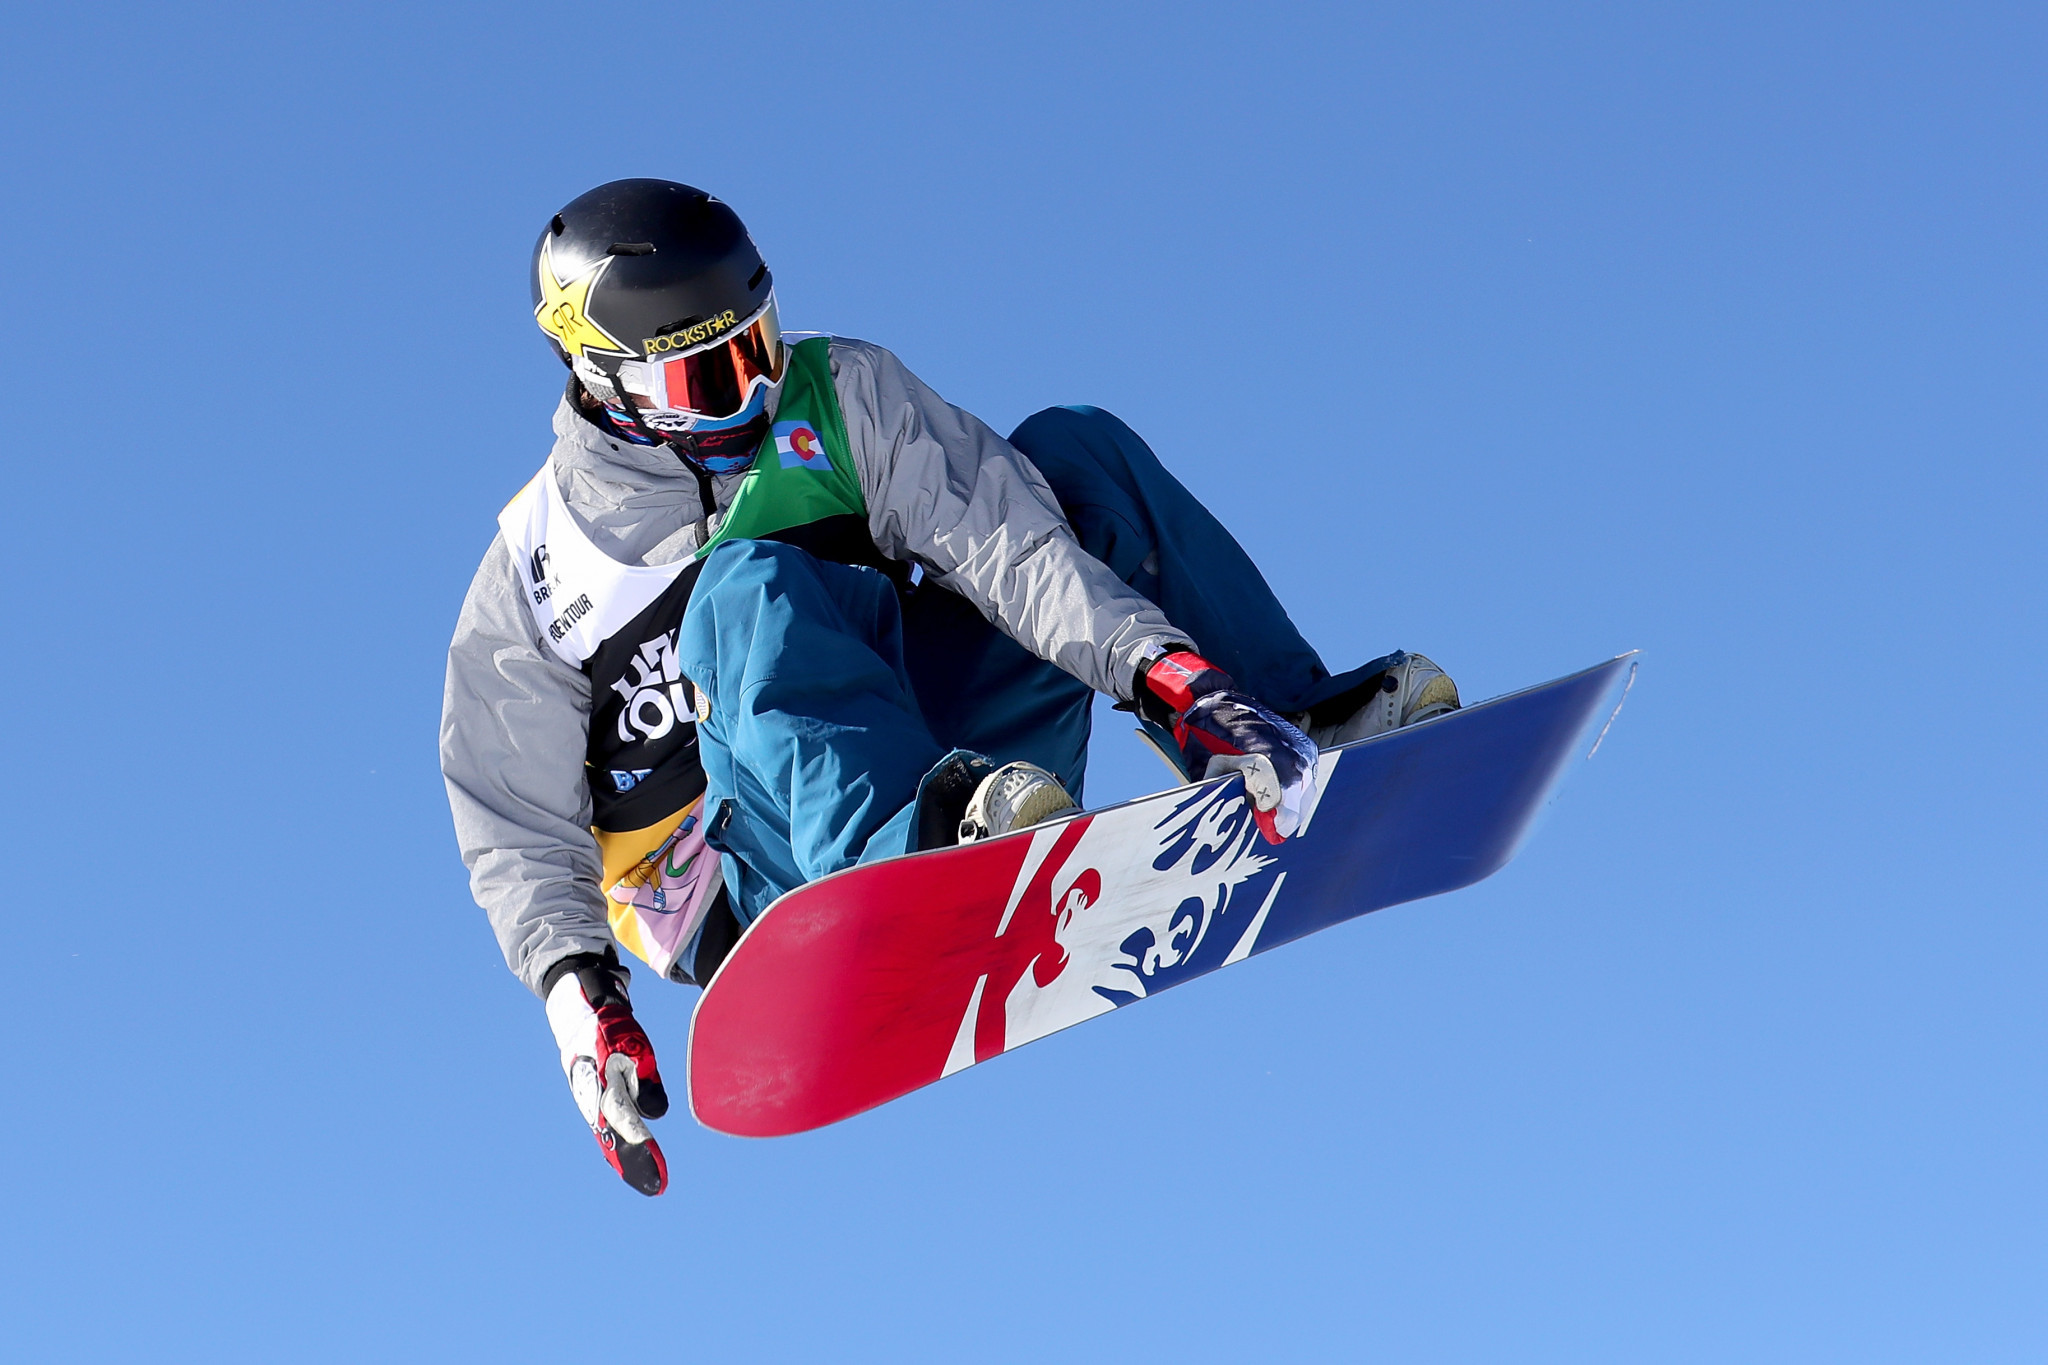 Corning and Norendal get first slopestyle FIS Snowboard World Cup victories in Laax